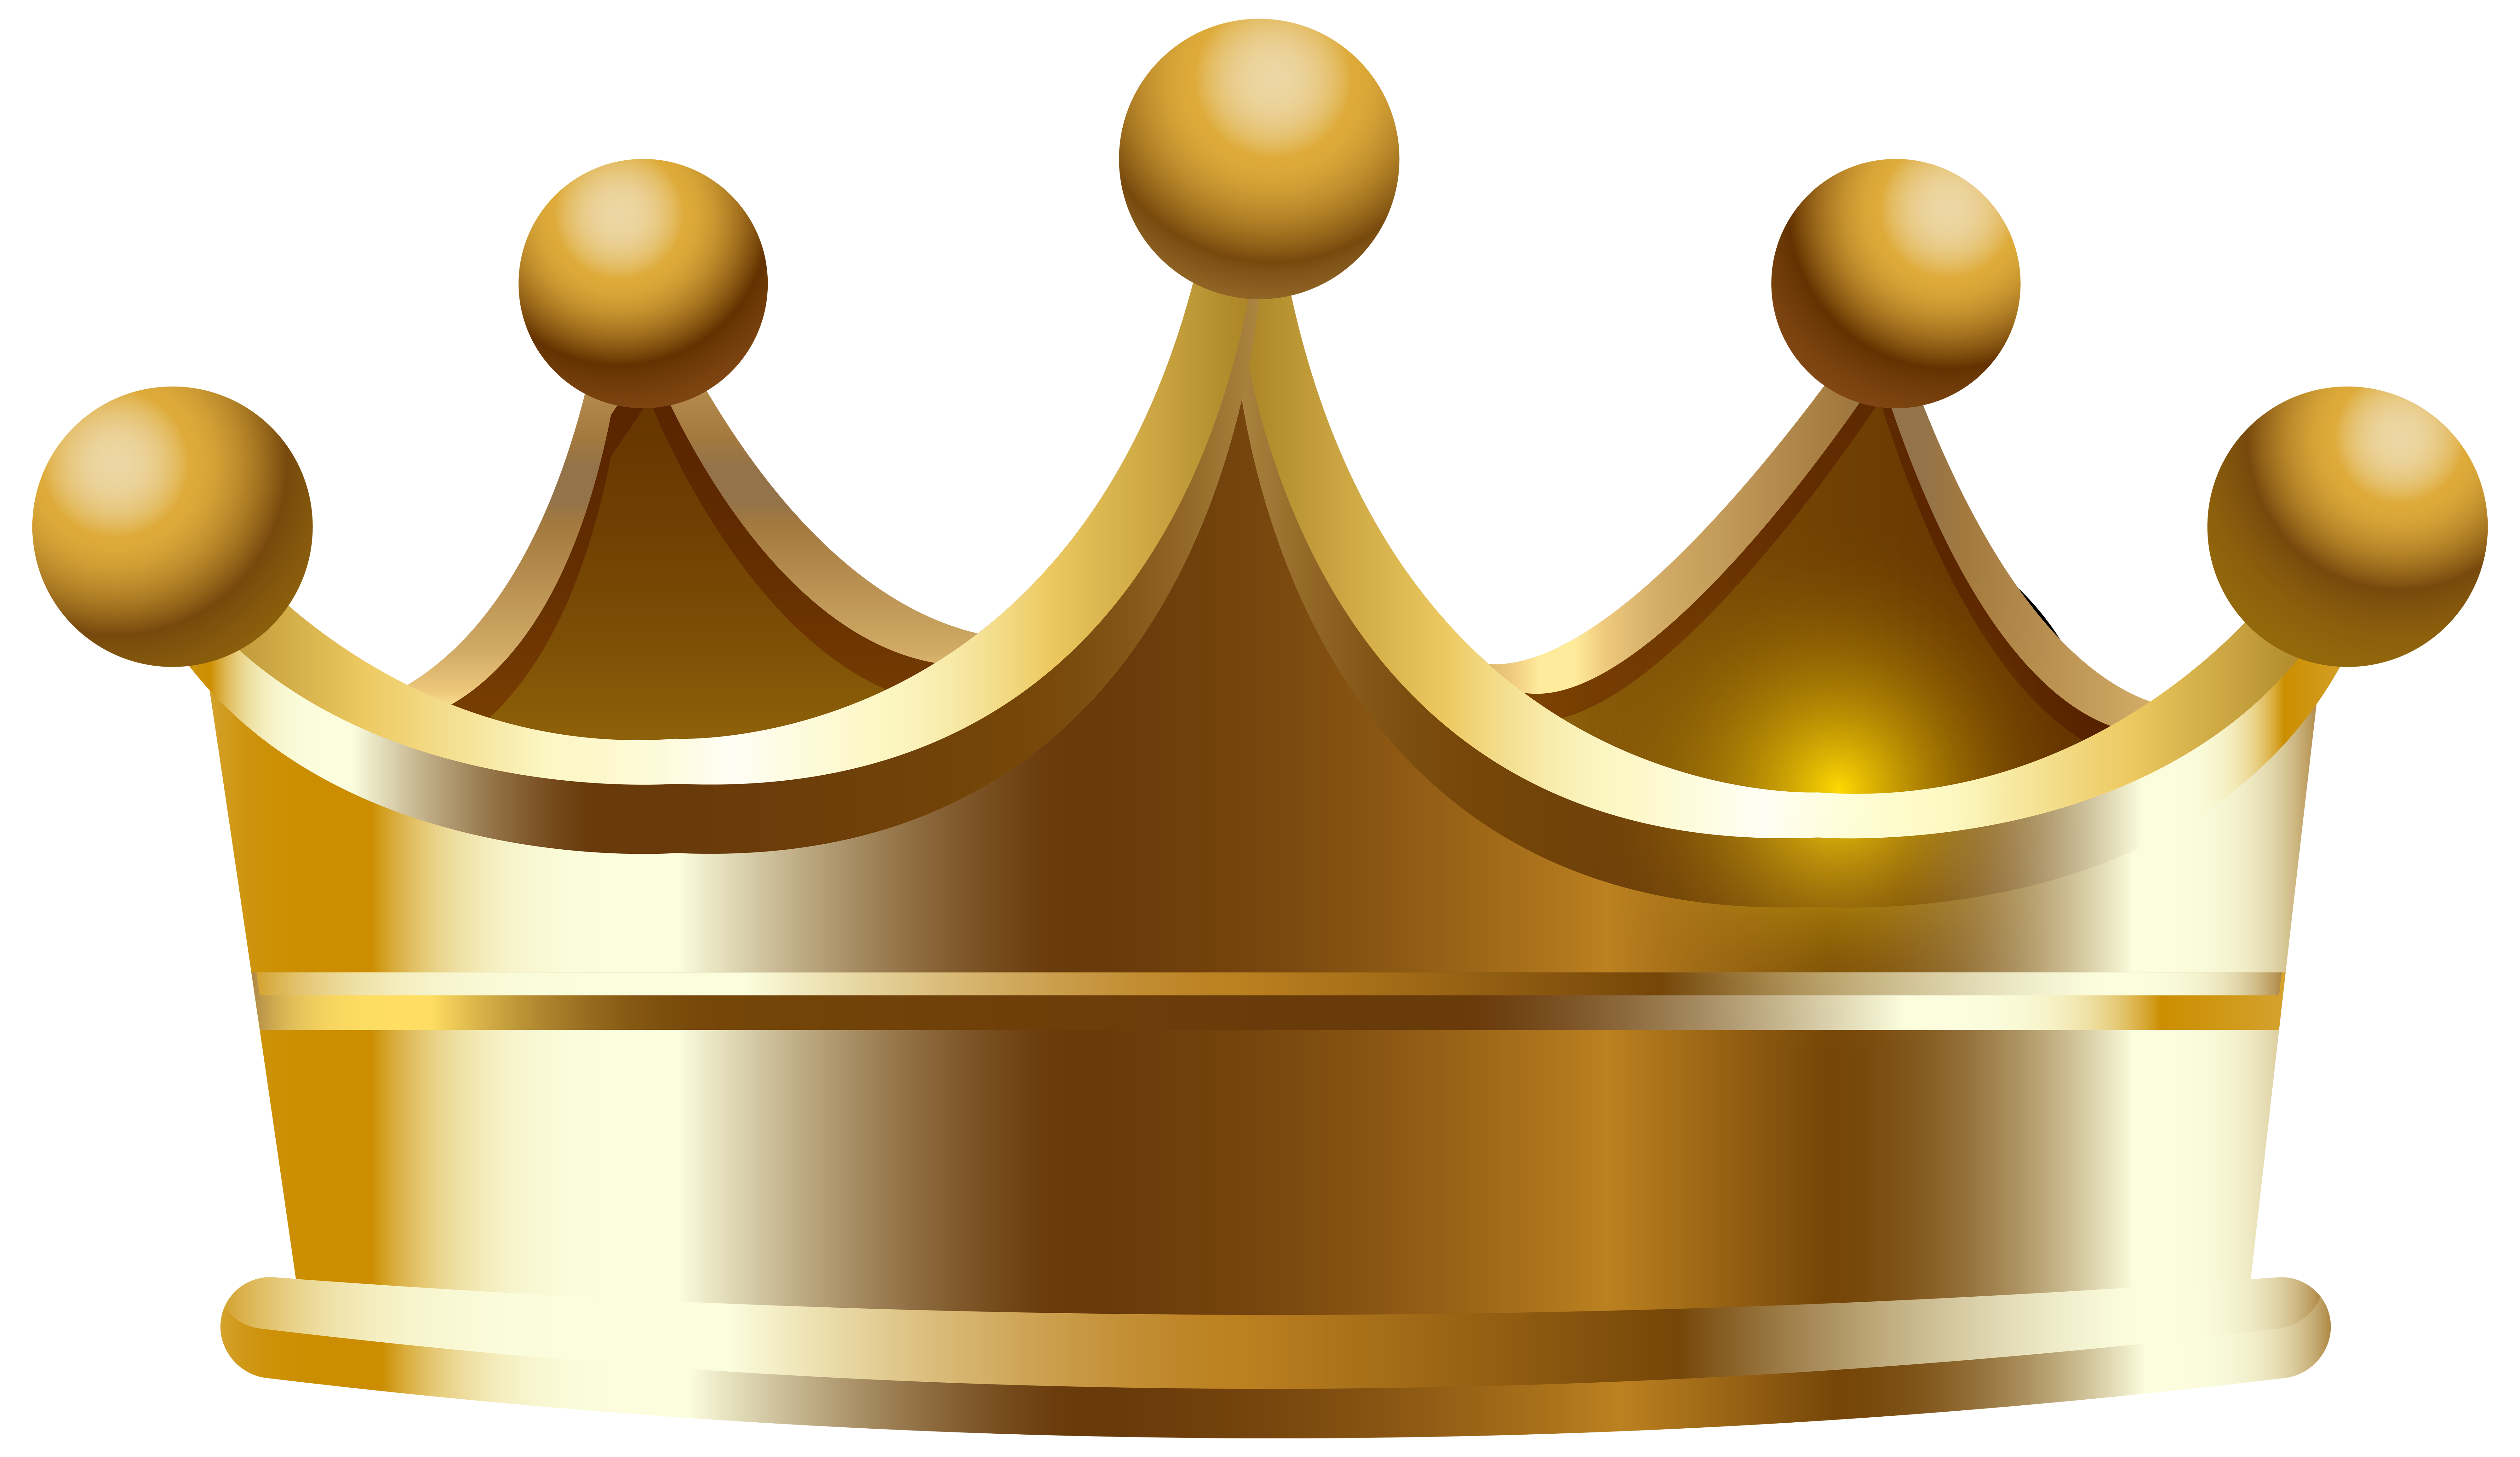 8000x4625 Crown Png Transparent Clip Art Imageu200b Gallery Yopriceville